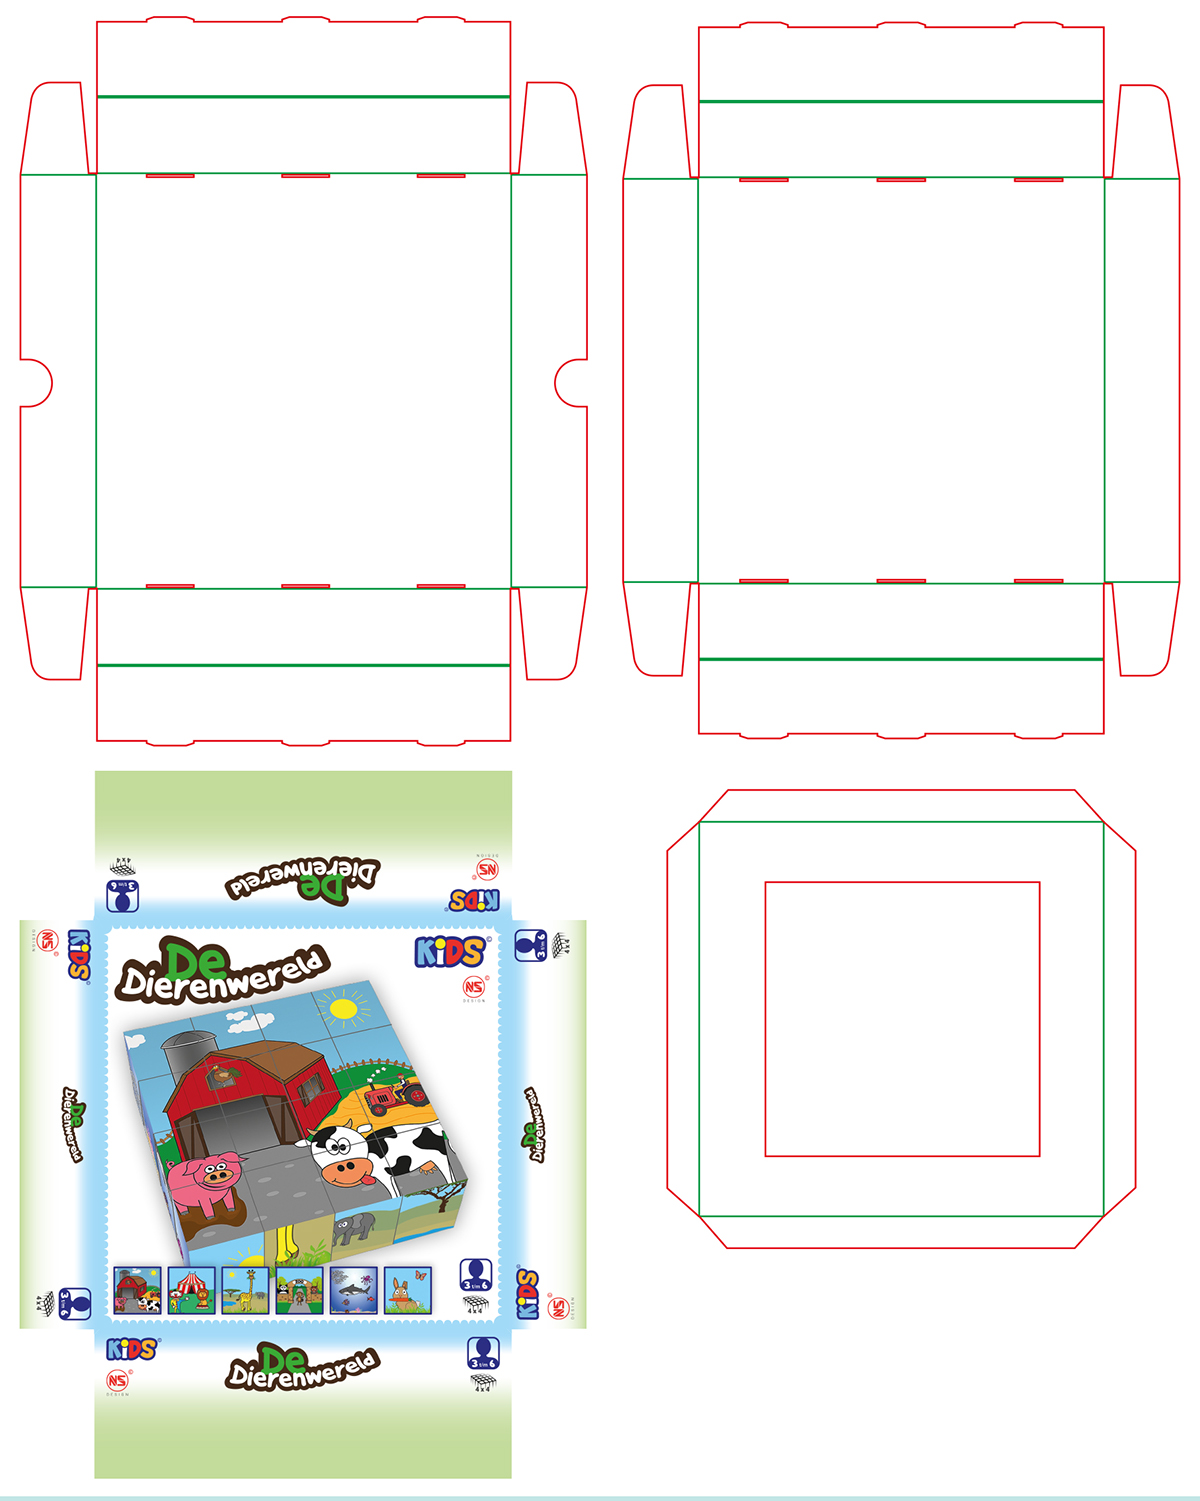 graphic design child product blocks puzzle toy Illustrator photoshop InDesign package book puzzle